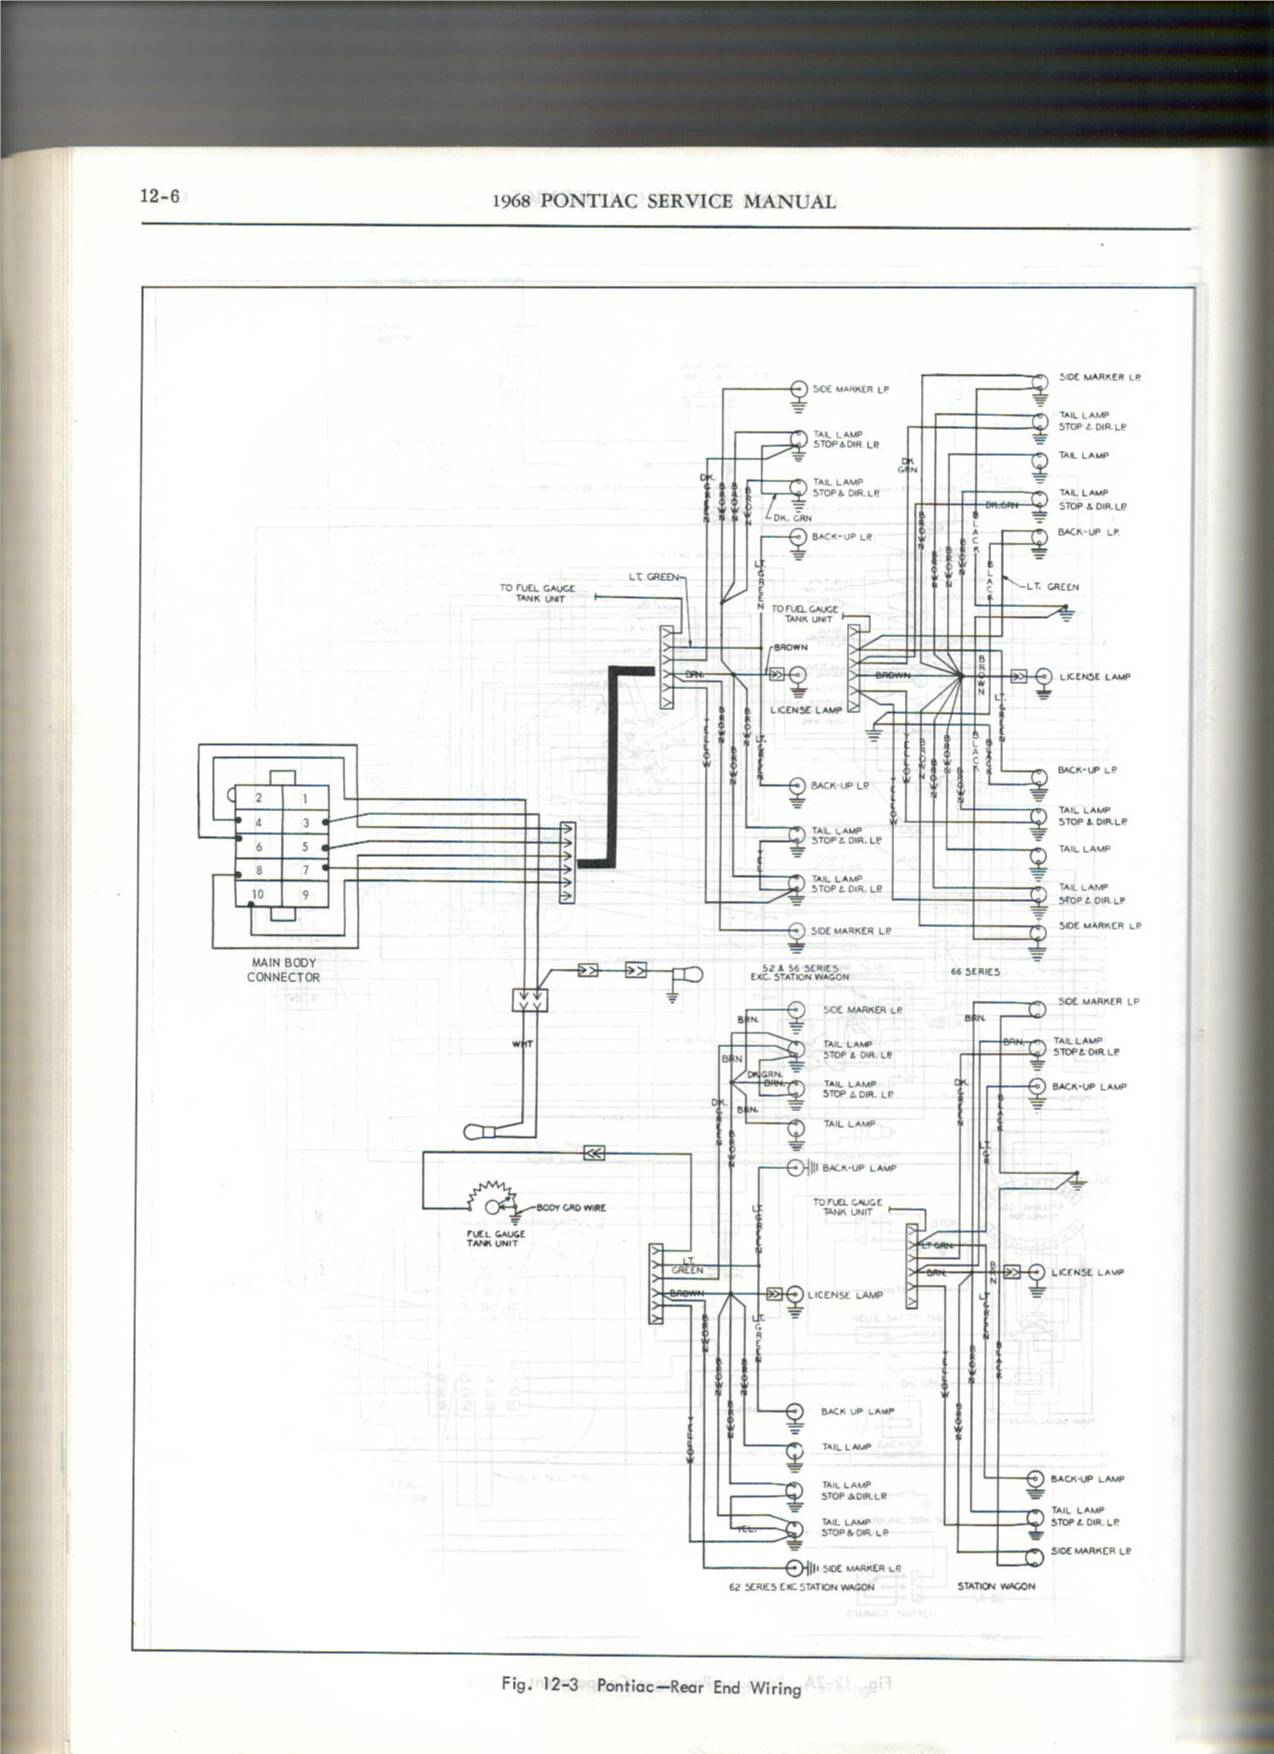 1968 Pontiac Gto Wiring Diagram Library Mustang Air Conditioning Click Image For Larger Version Name 68 Tail Views